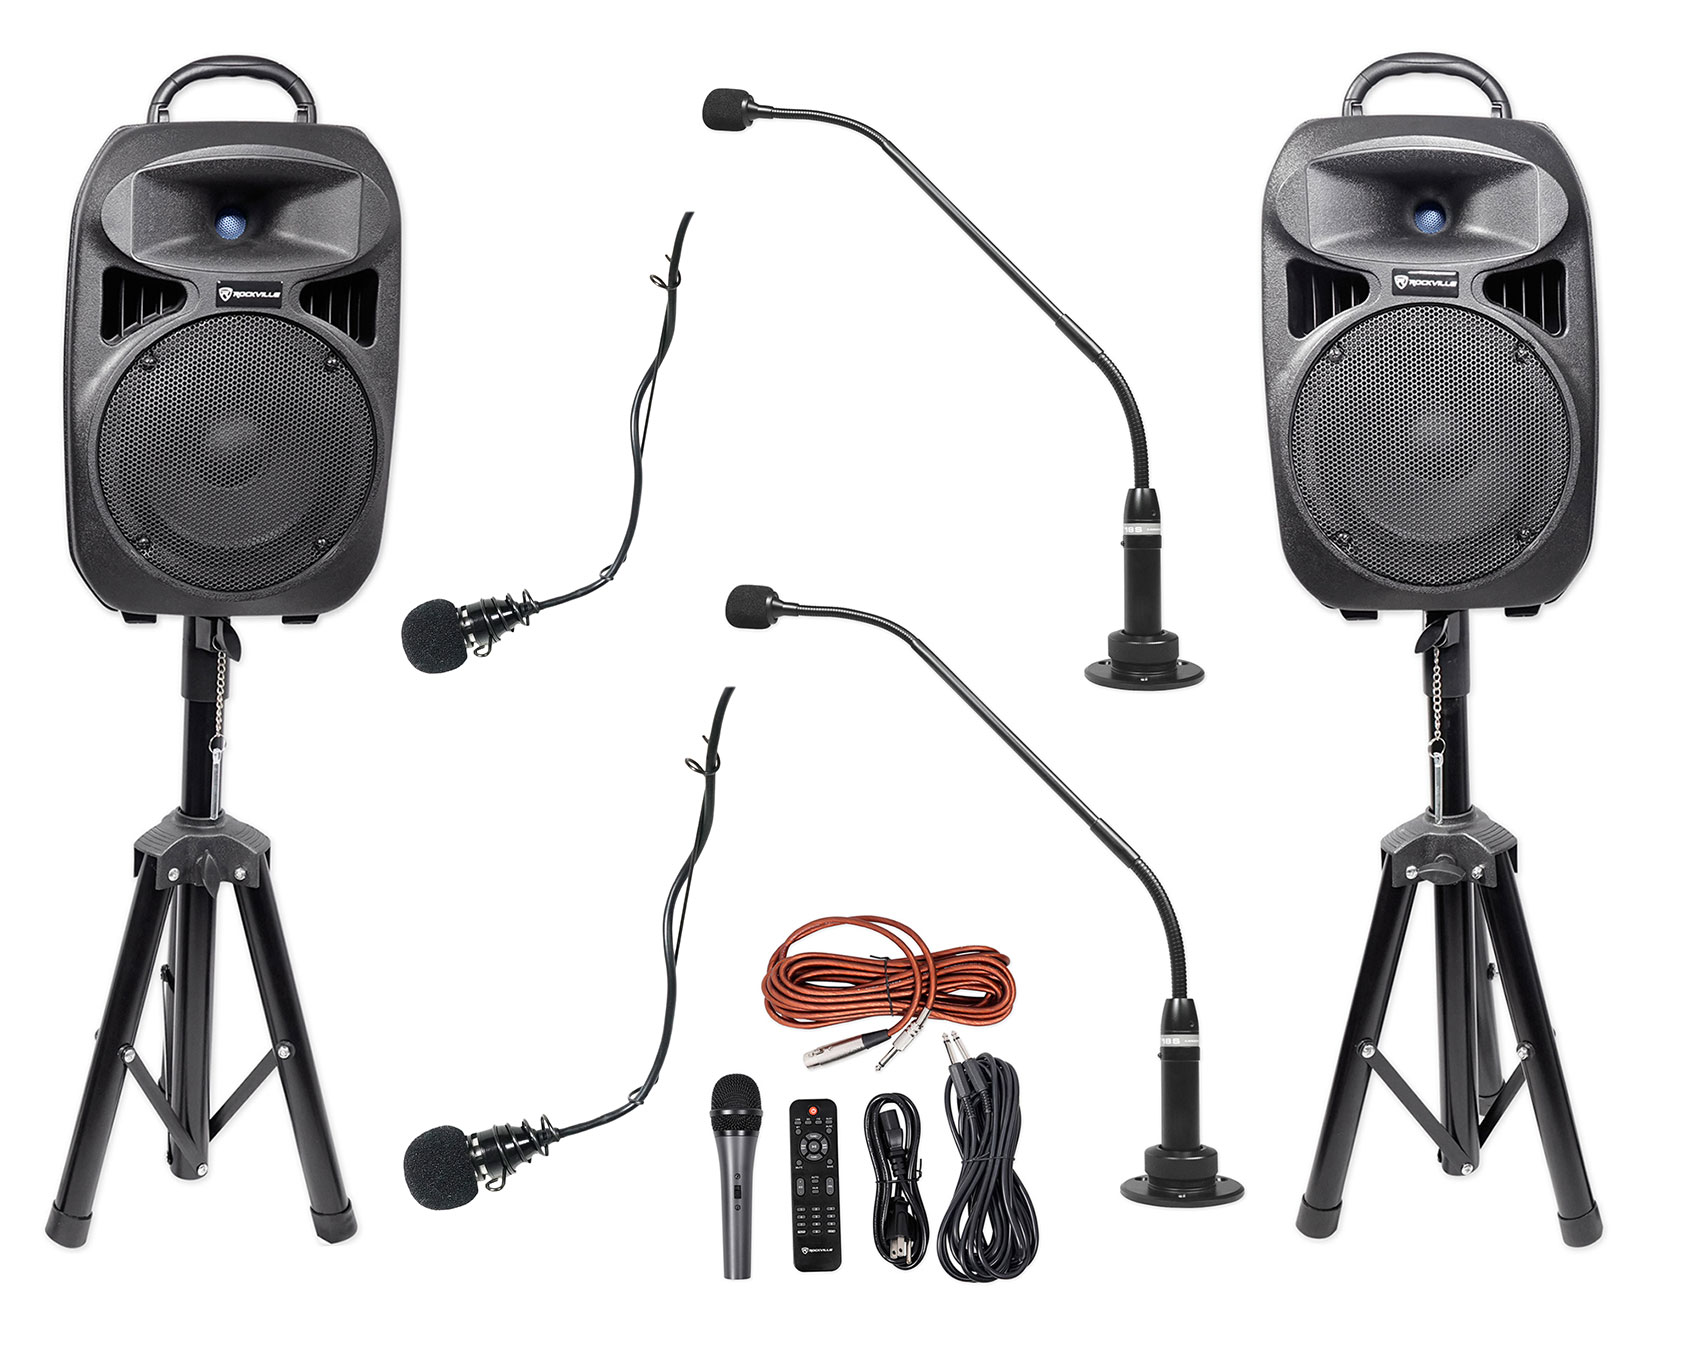 (2) Peavey Black Podium+(2) Choir Microphones+Speakers for Church Sound  Systems